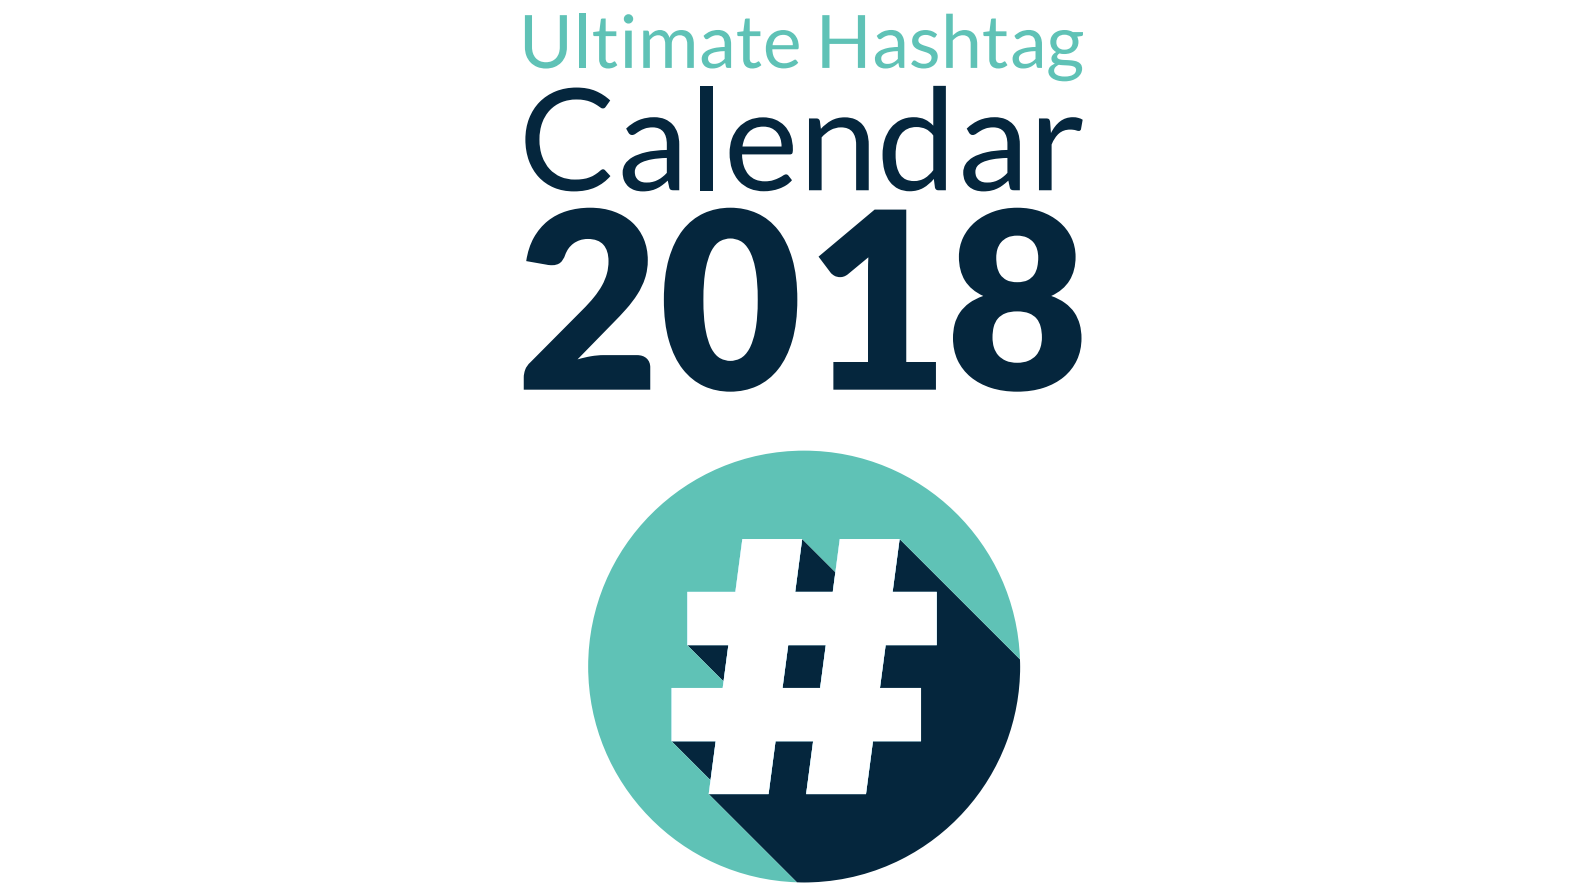 2018-social-media-hashtag-calendar-sparrow-digital